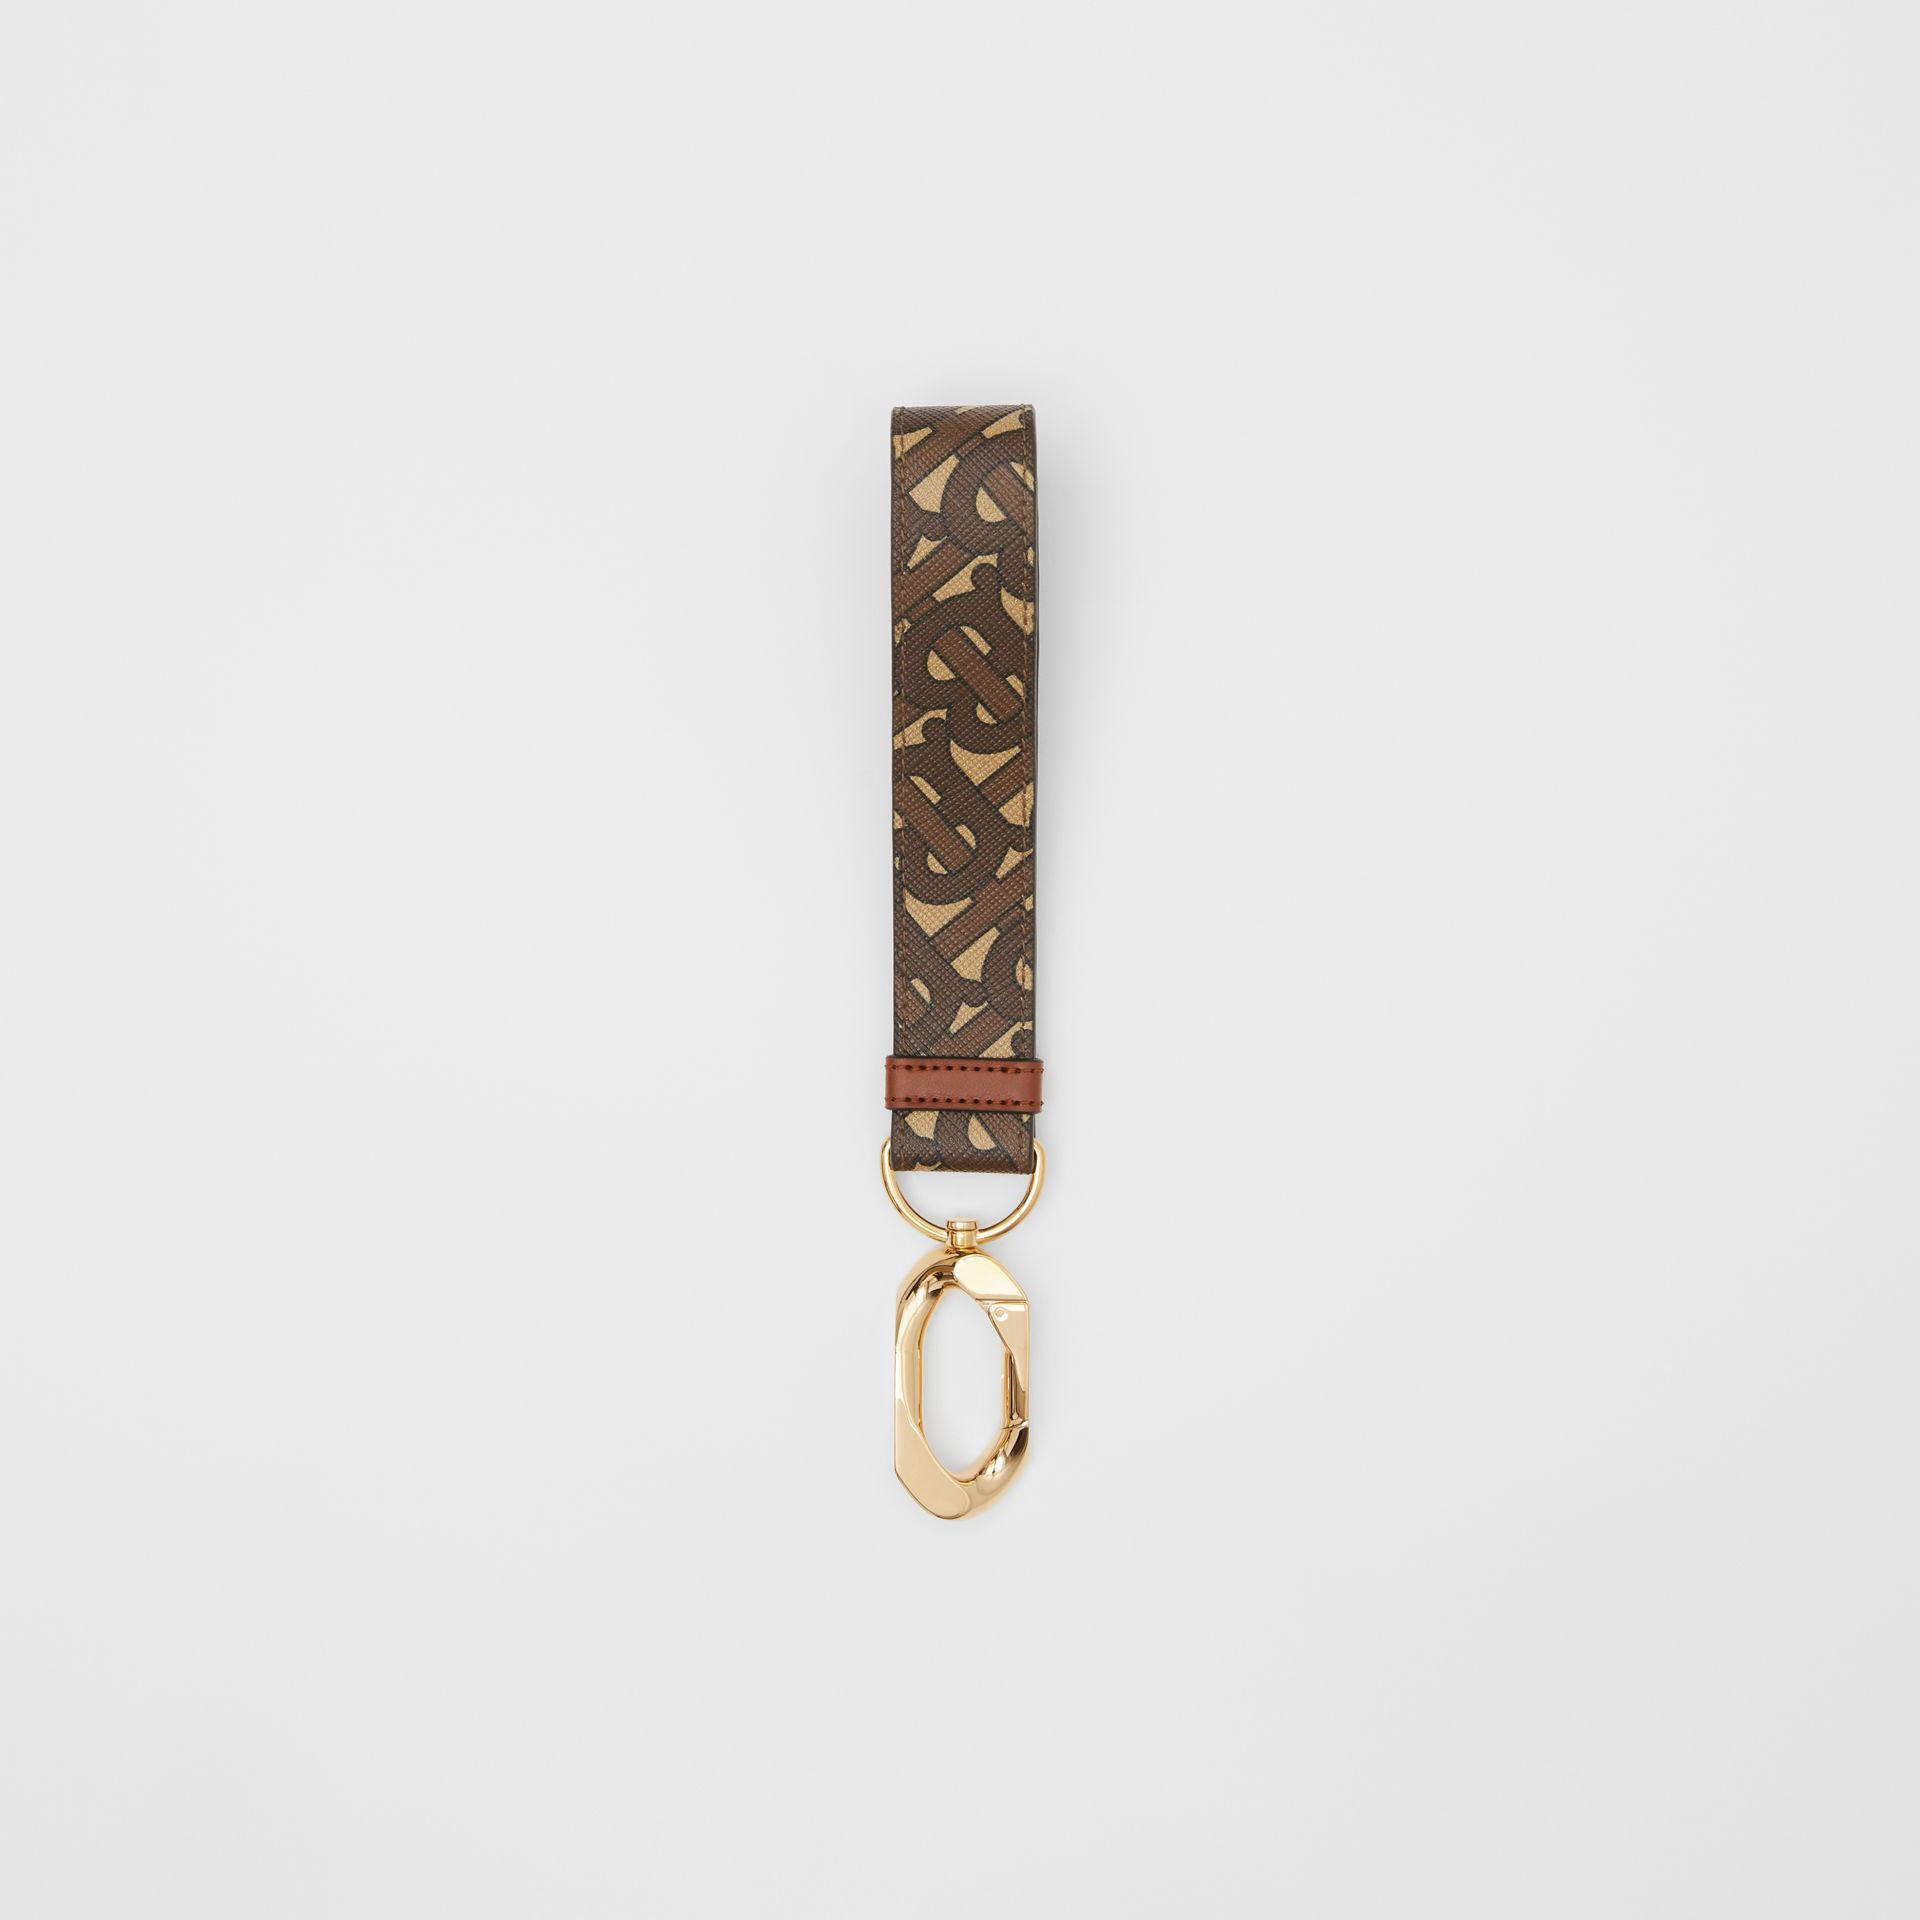 Monogram Print E-canvas Charm in Bridle Brown - Women | Burberry - gallery image 2